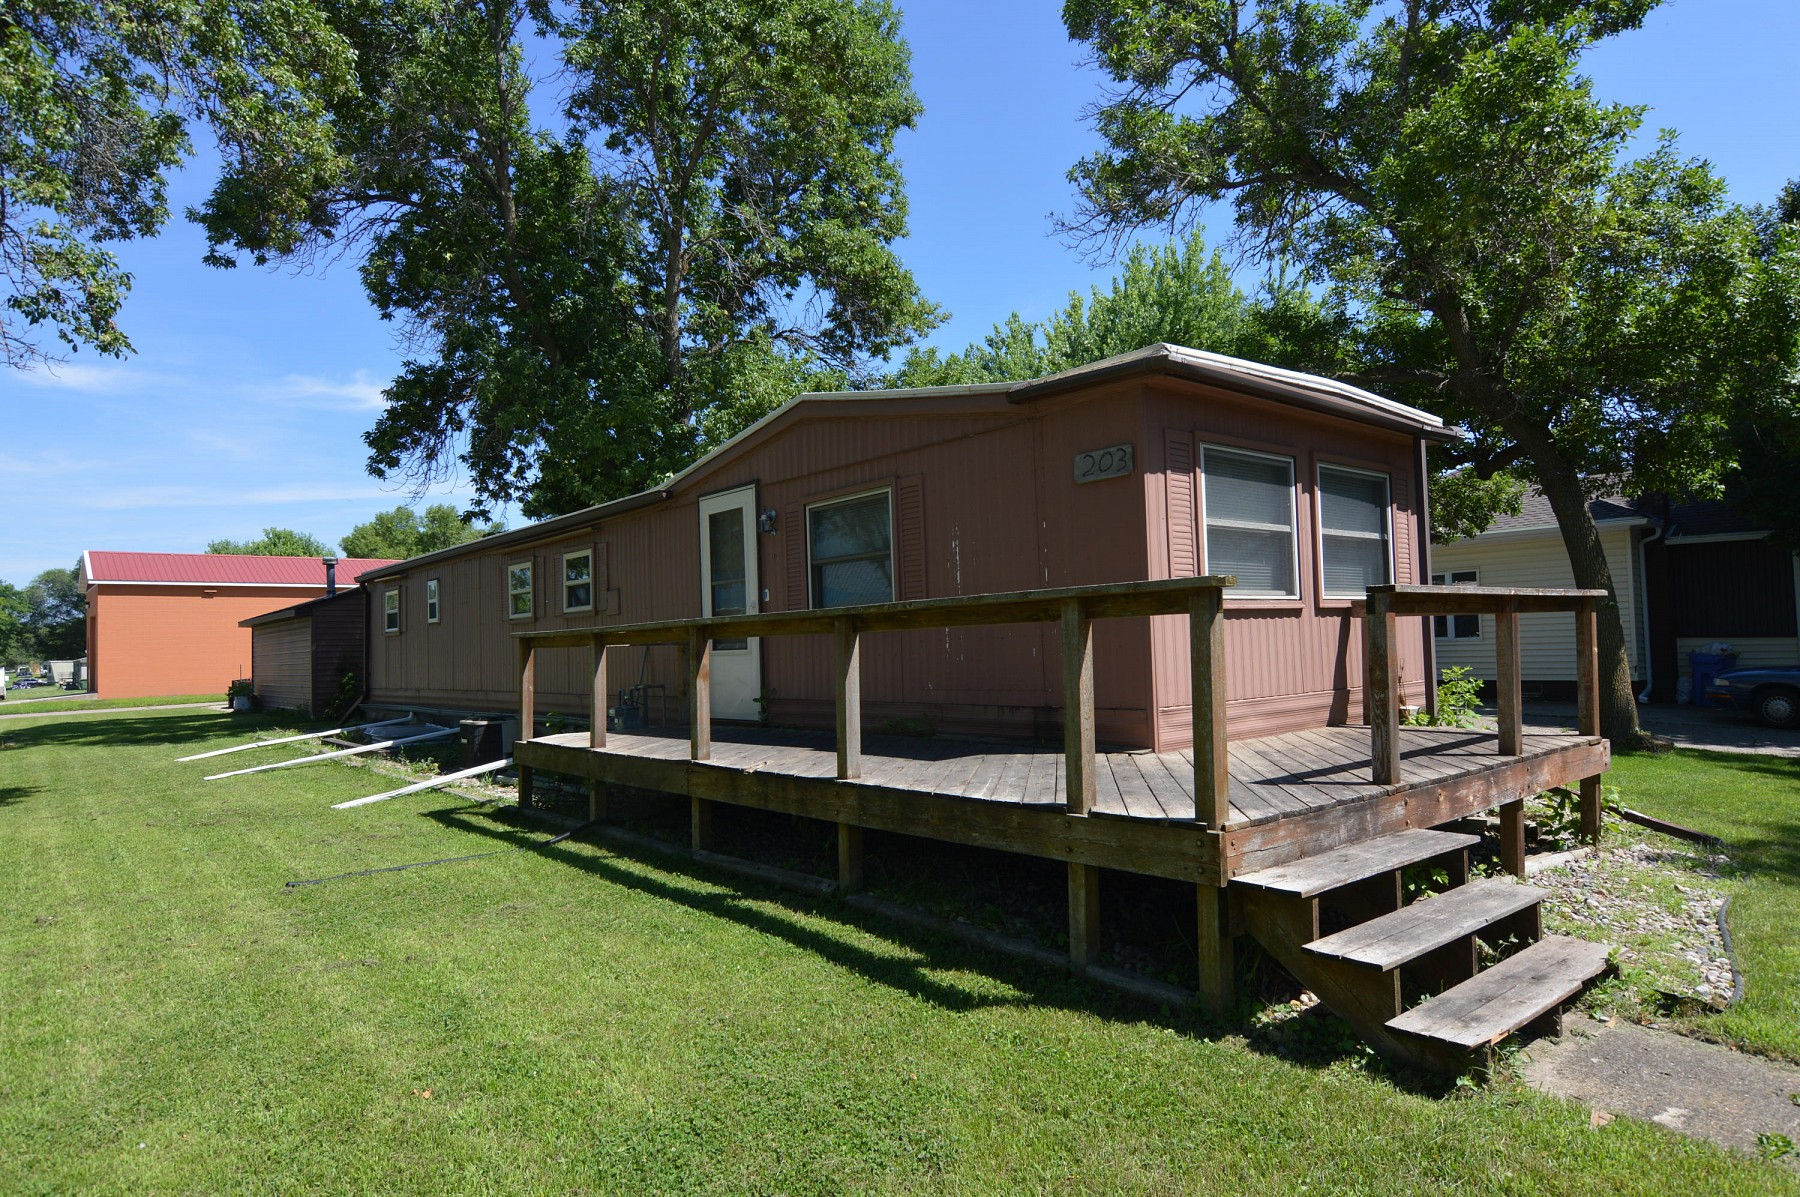 203 6th Avenue S, Brookings, SD 57006